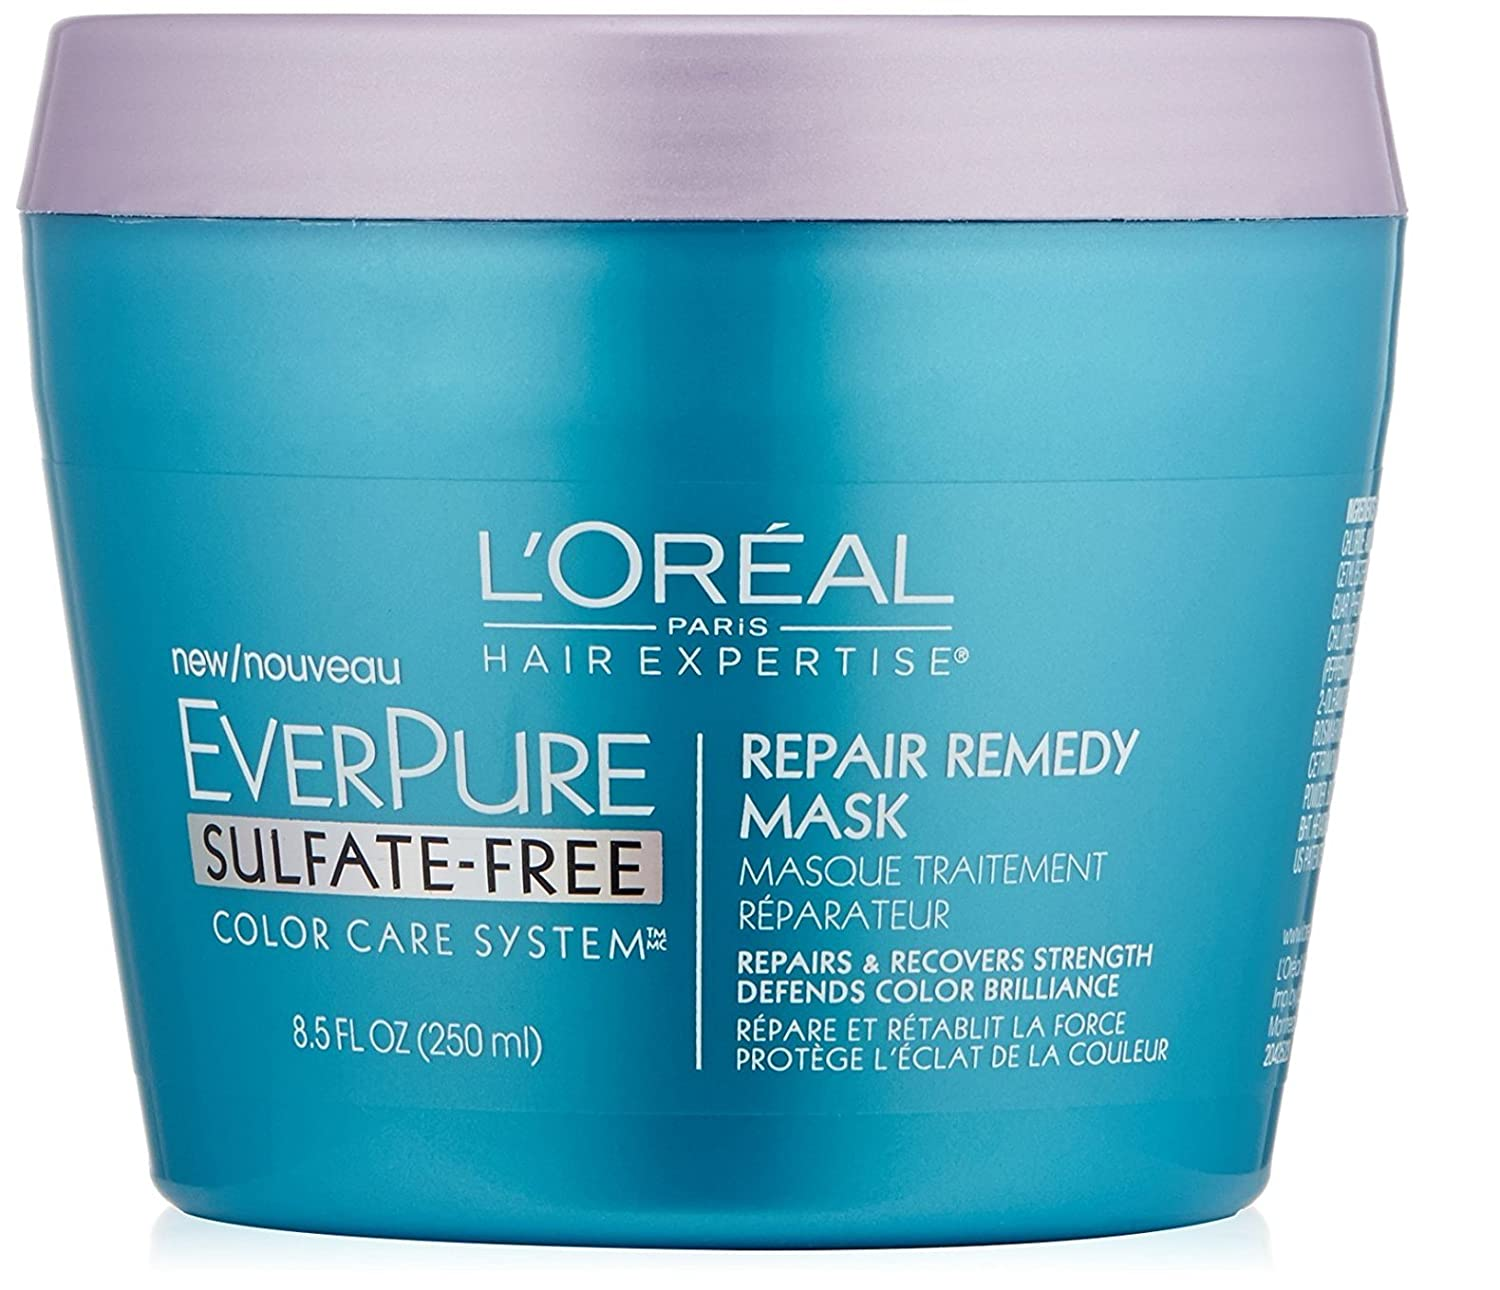 L'Oreal Paris Hair Care Expertise Everpure Repair and Defend Rinse Out Mask, 8.5 Fl Oz + FREE Curad Dazzle Bandages 25 Ct